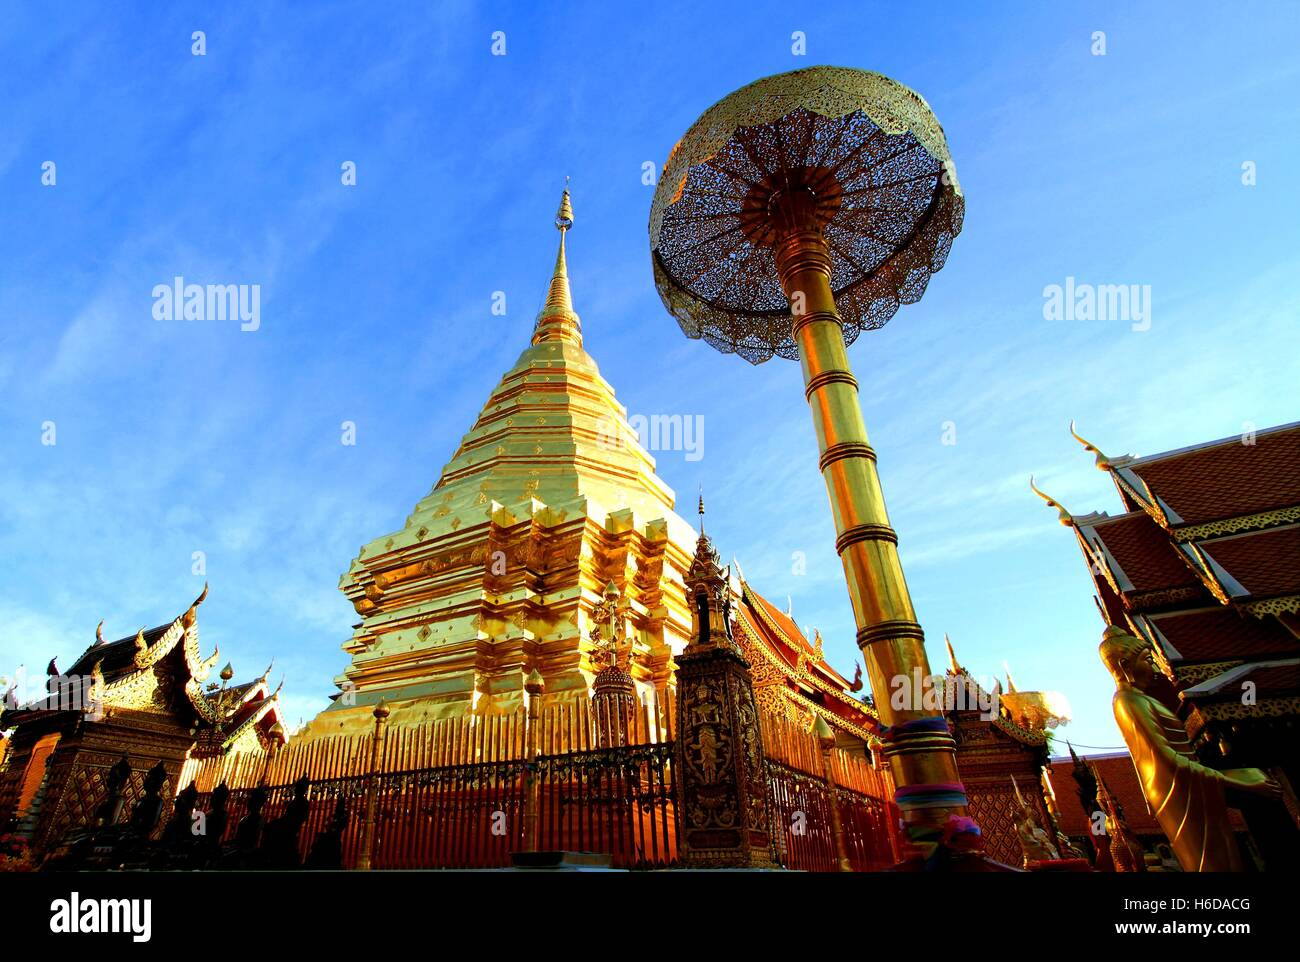 Golden stupa at Wat Phra That Doi Suthep, tourist attraction and popular historical temple of  Chiang Mai, Thailand. - Stock Image